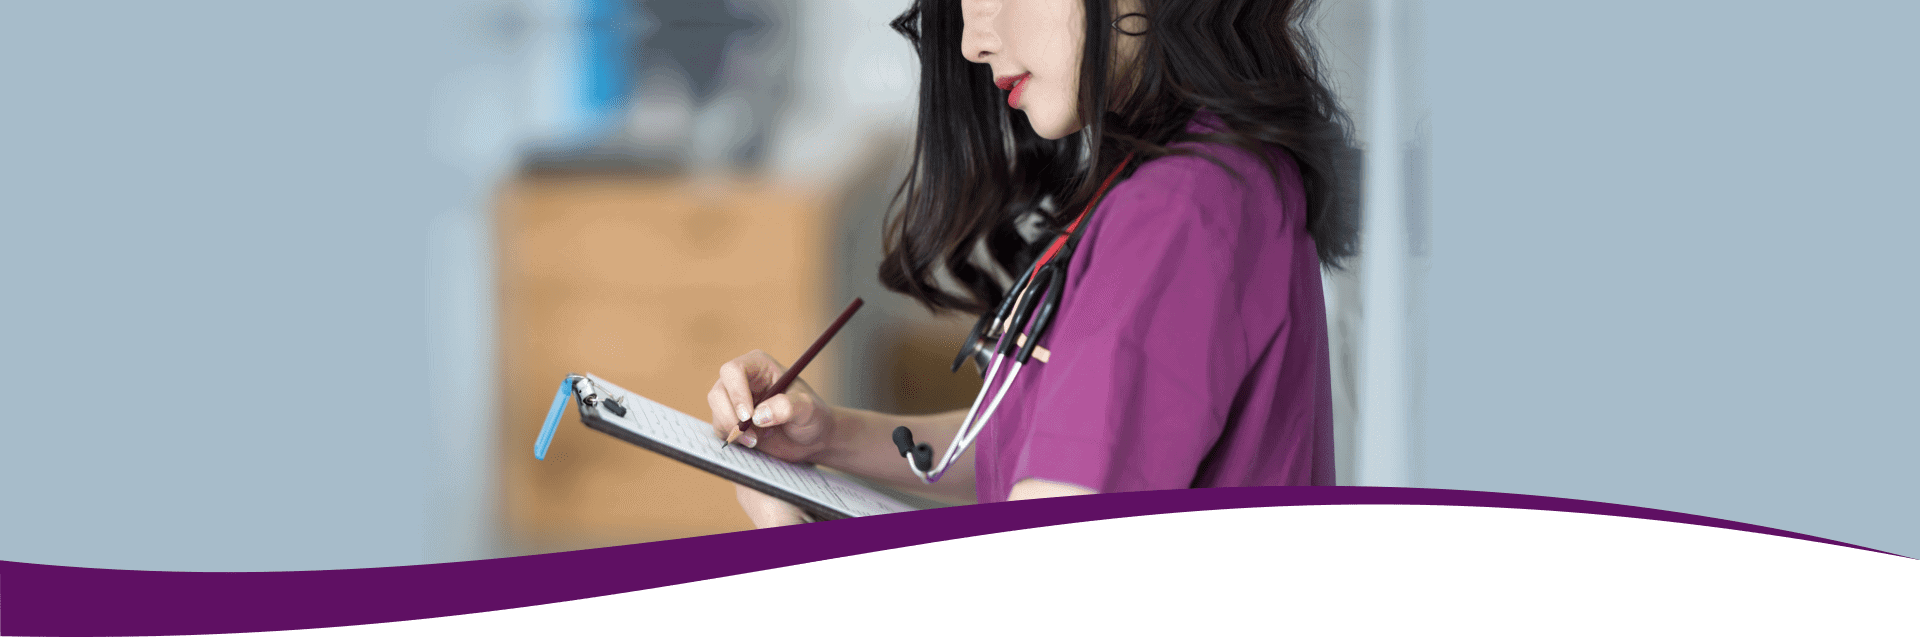 nurse wearing purple uniform standing besides the patient room while checking medical chart